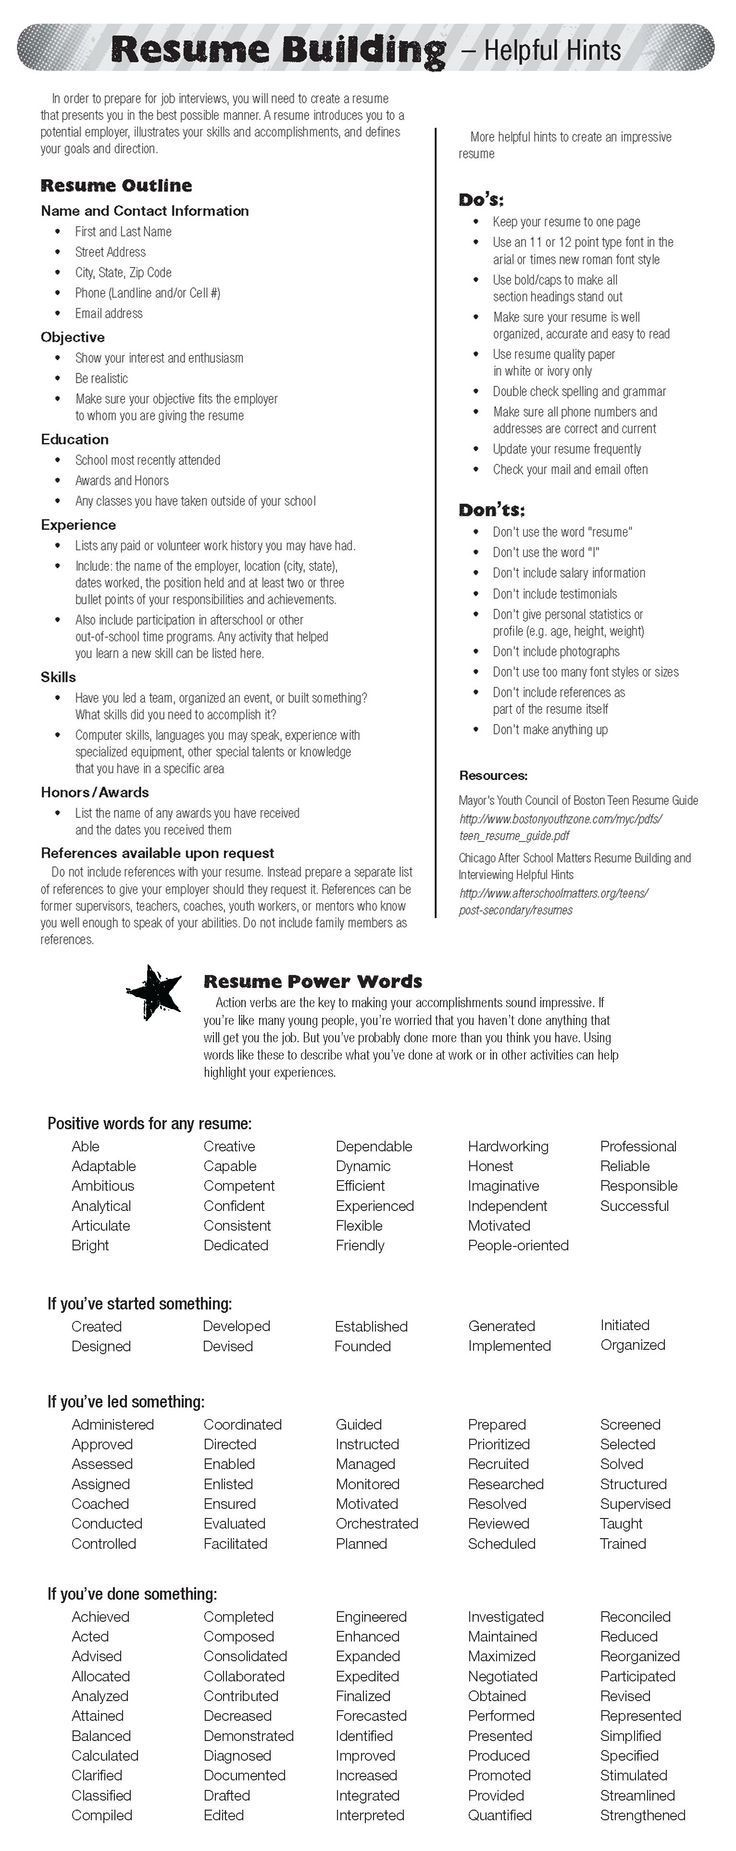 perfect font for resume